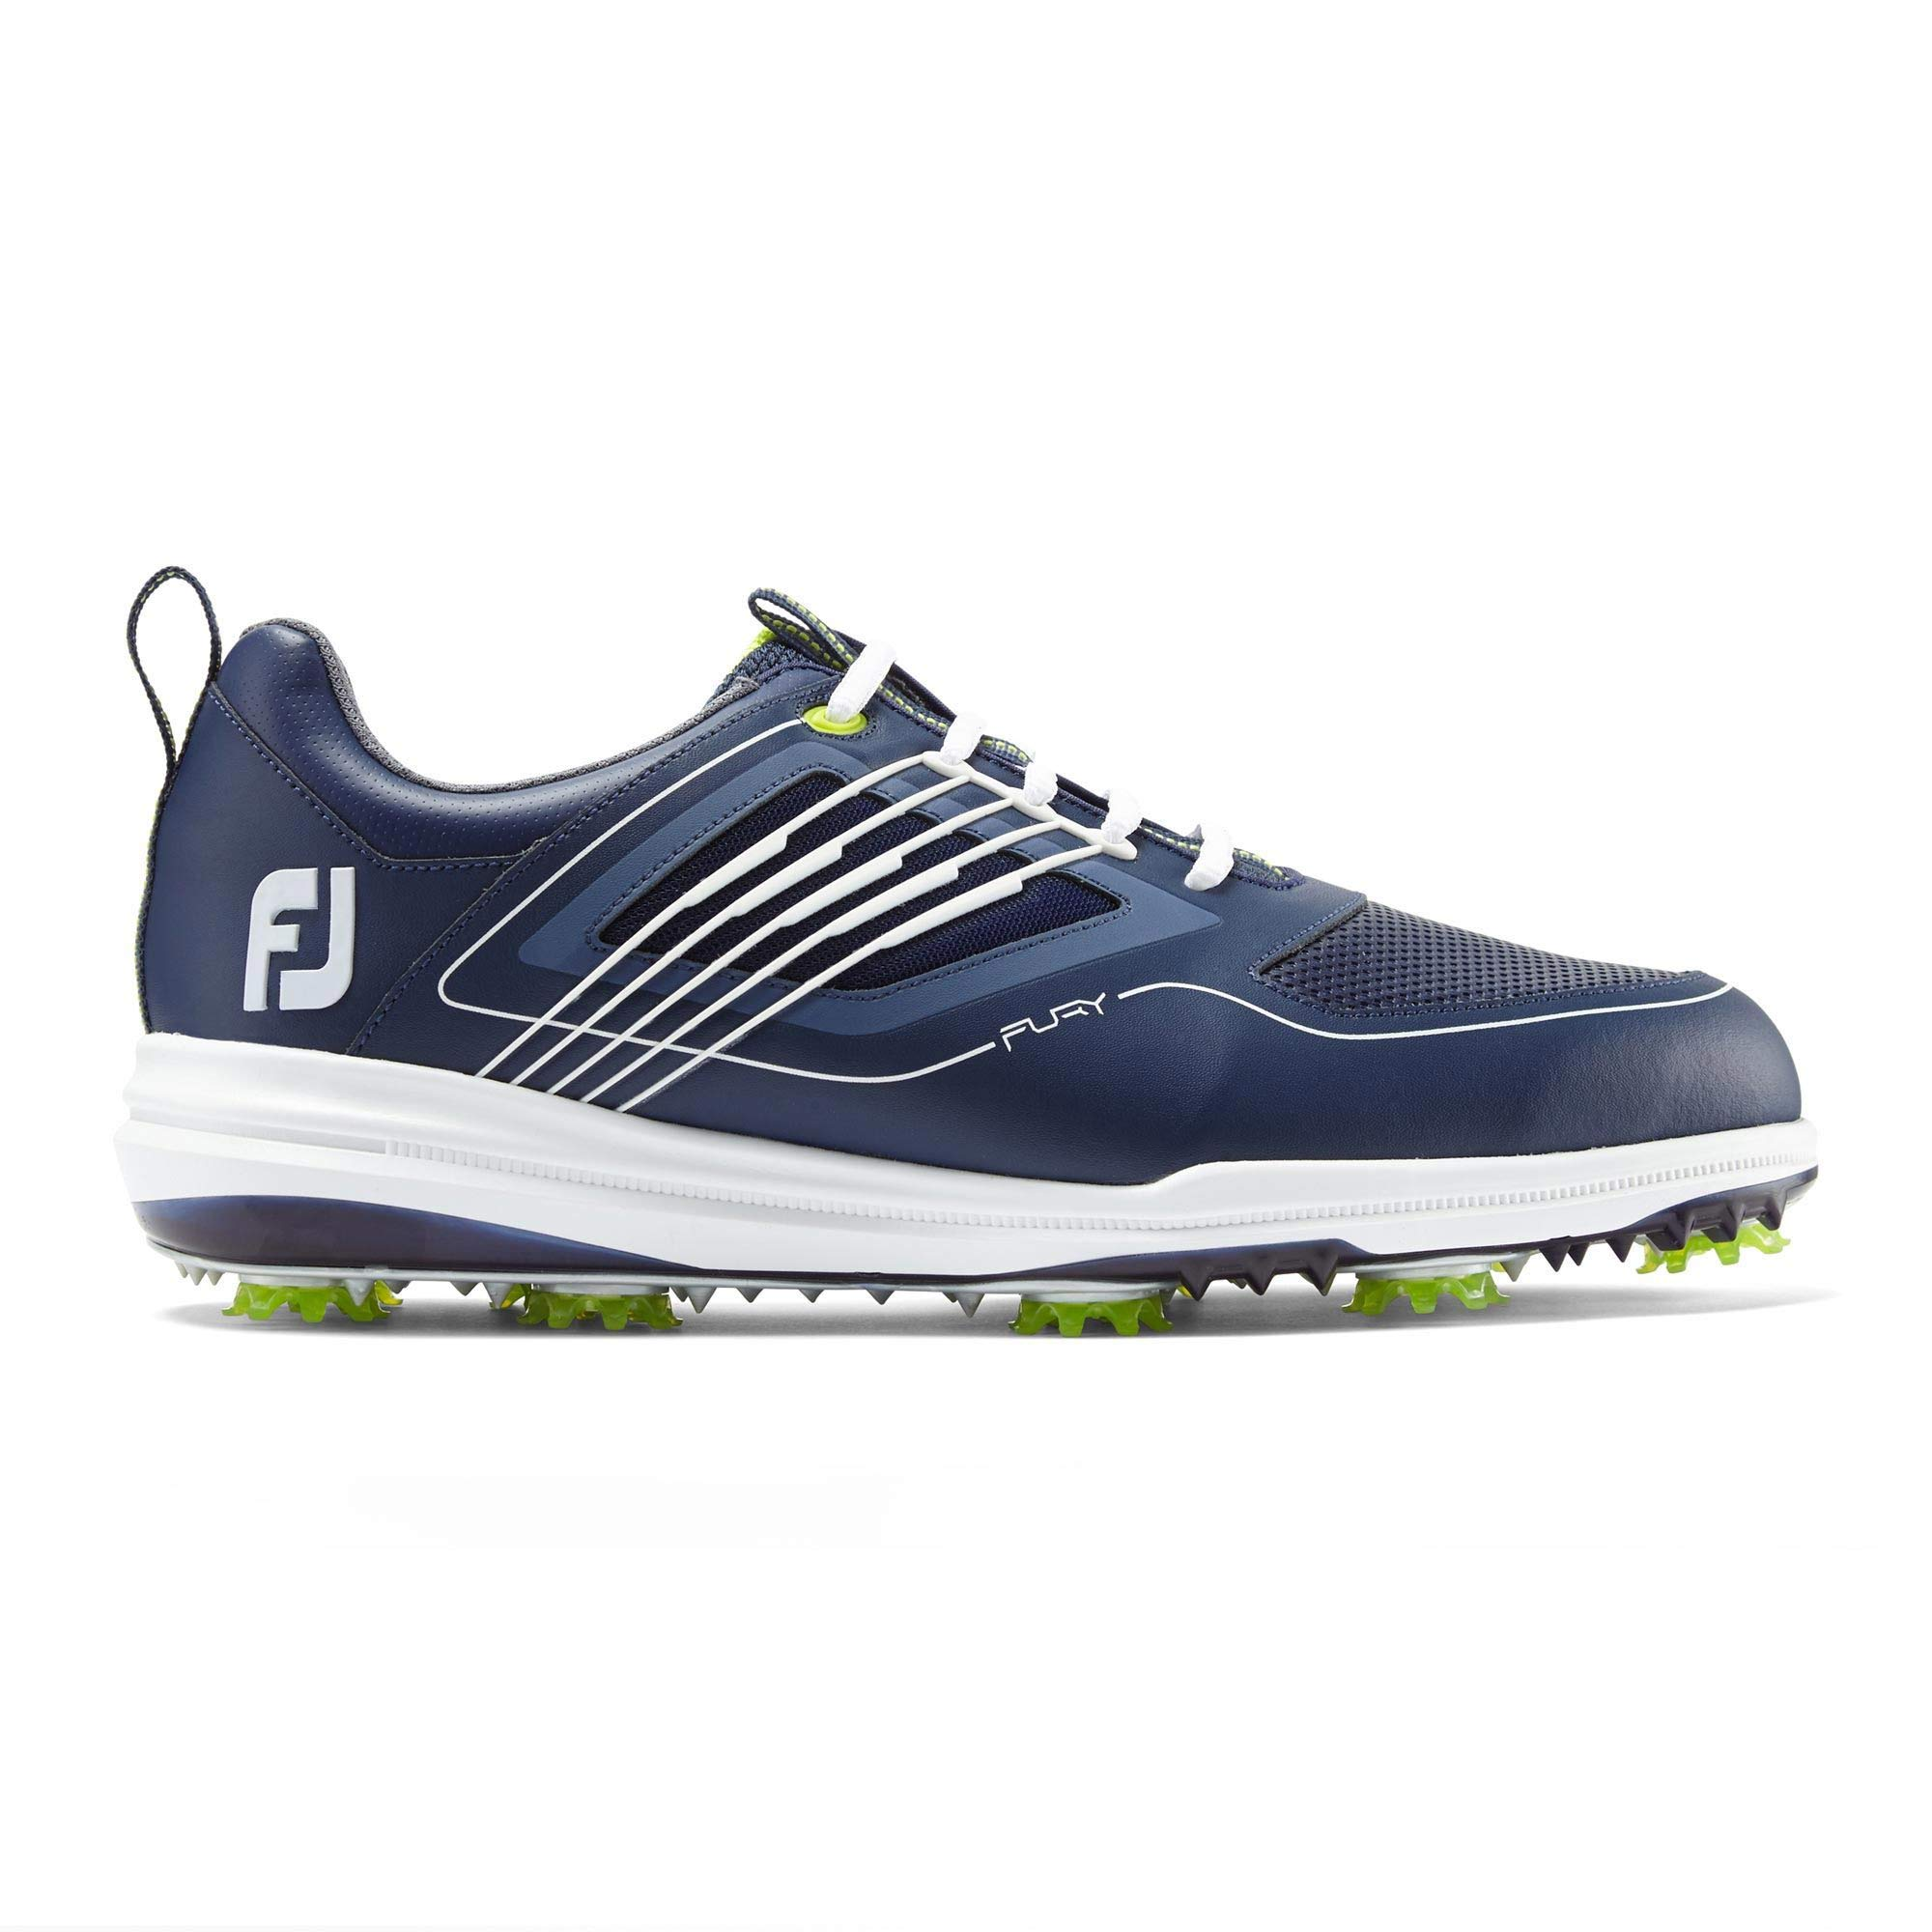 FootJoy Men's Fury Golf Shoes Blue 10.5 M, Navy/White, US by FootJoy